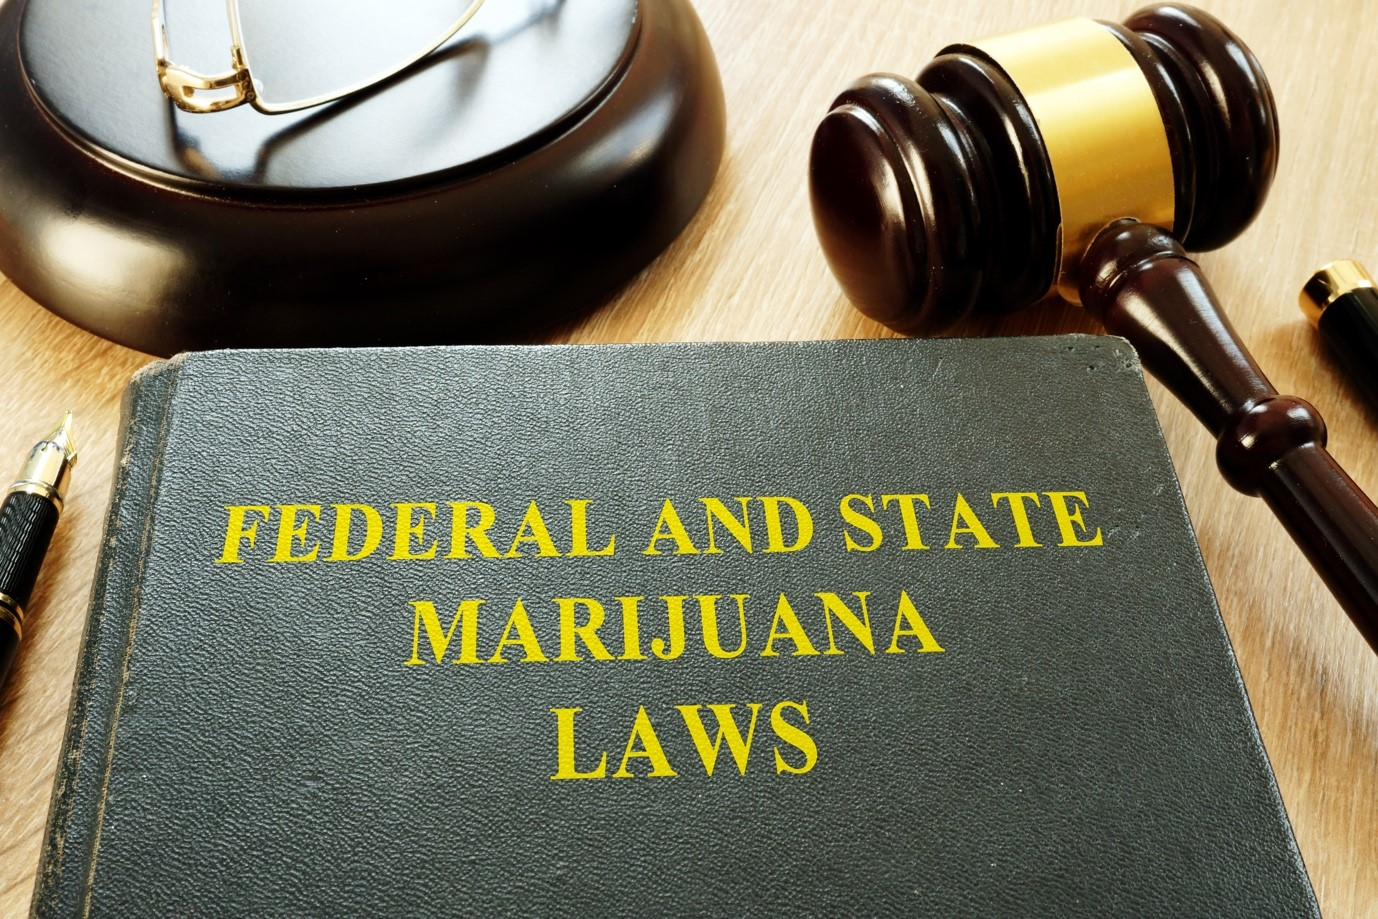 A legal book containing federal and state laws regarding marijuana